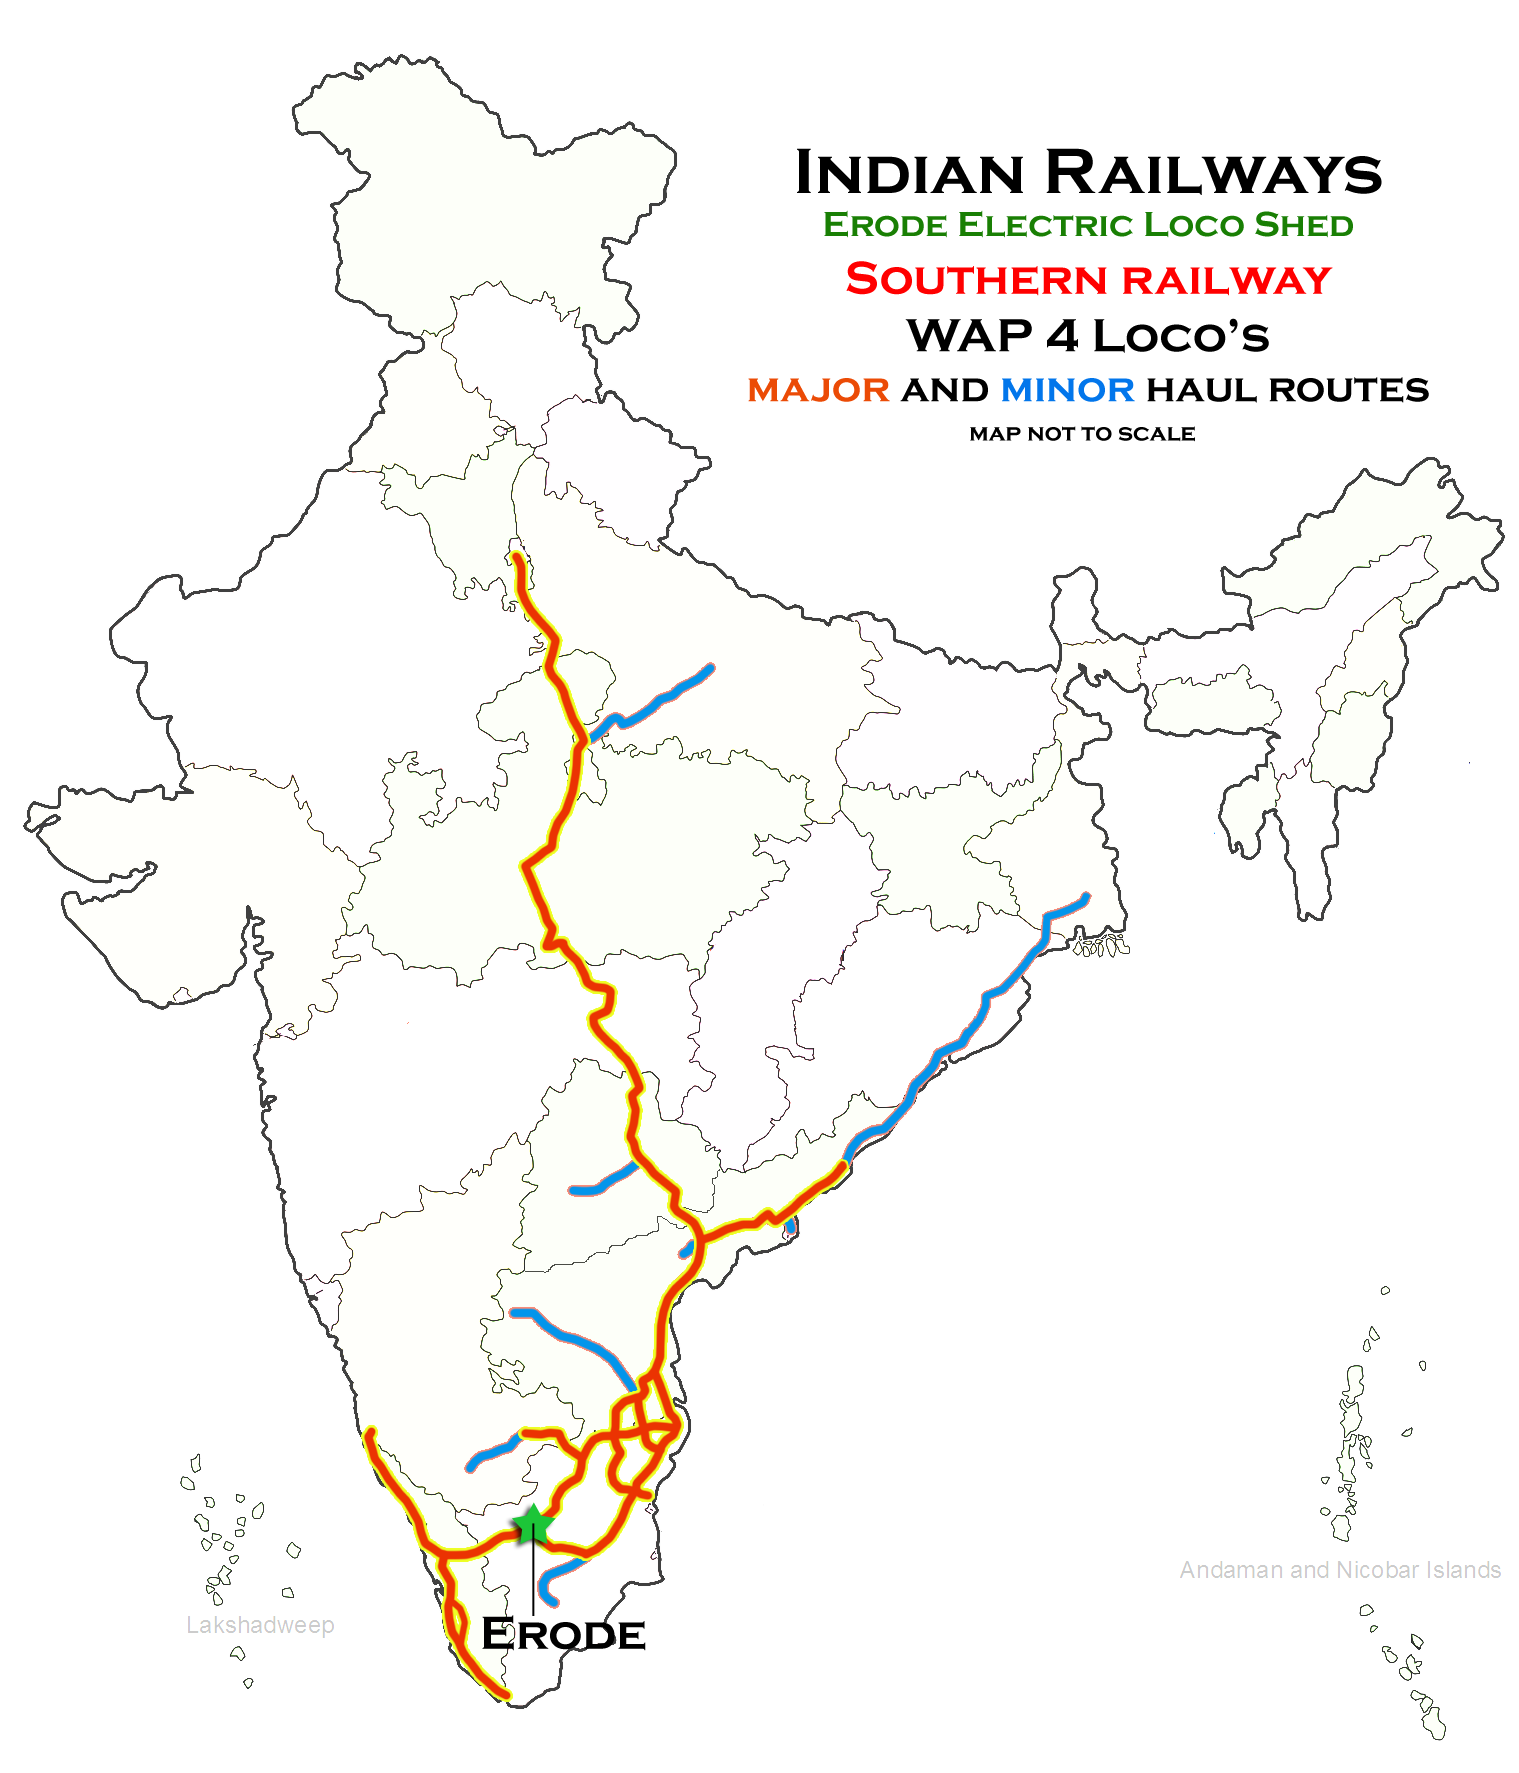 File:Route haul map of Erode Electric Loco shed.png ... on